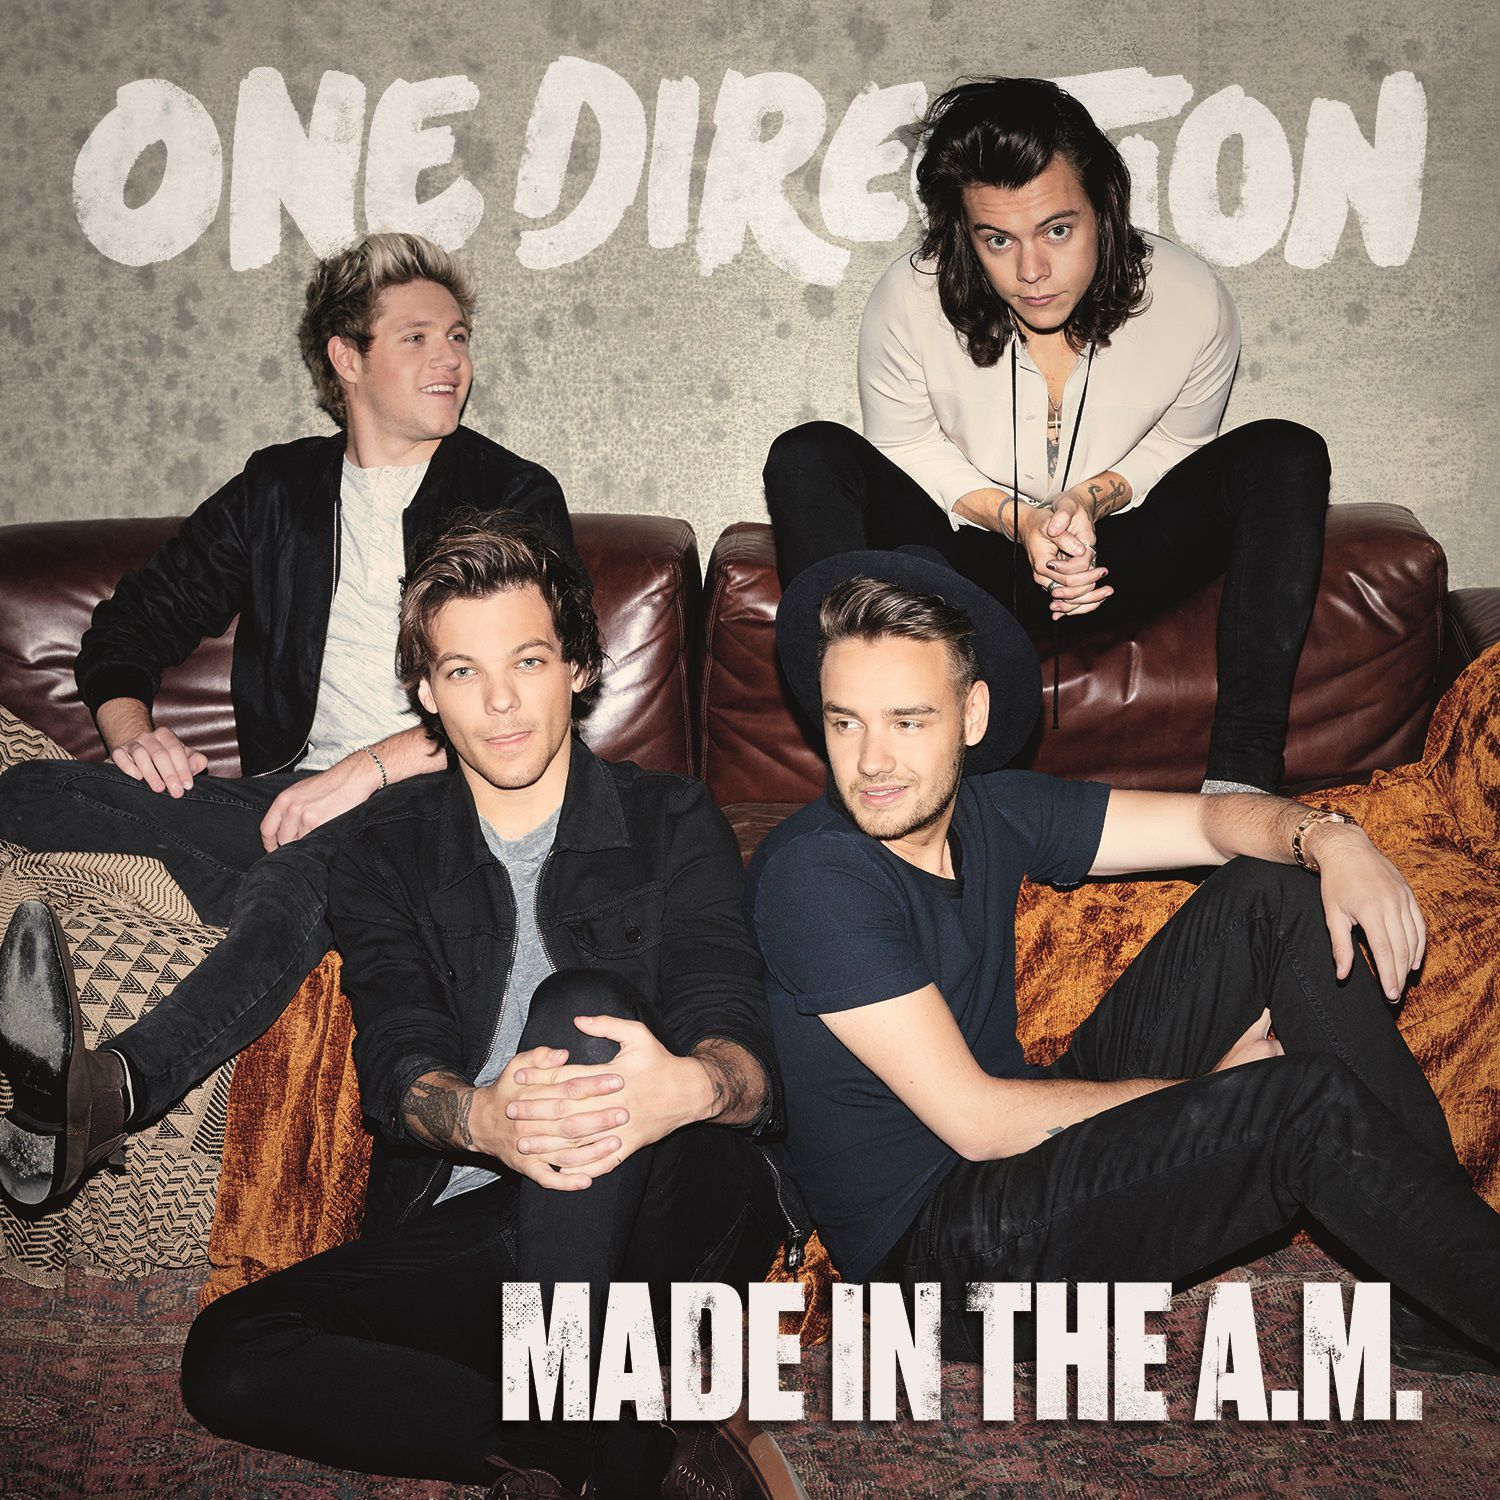 One Direction - Made In The A.M. album cover